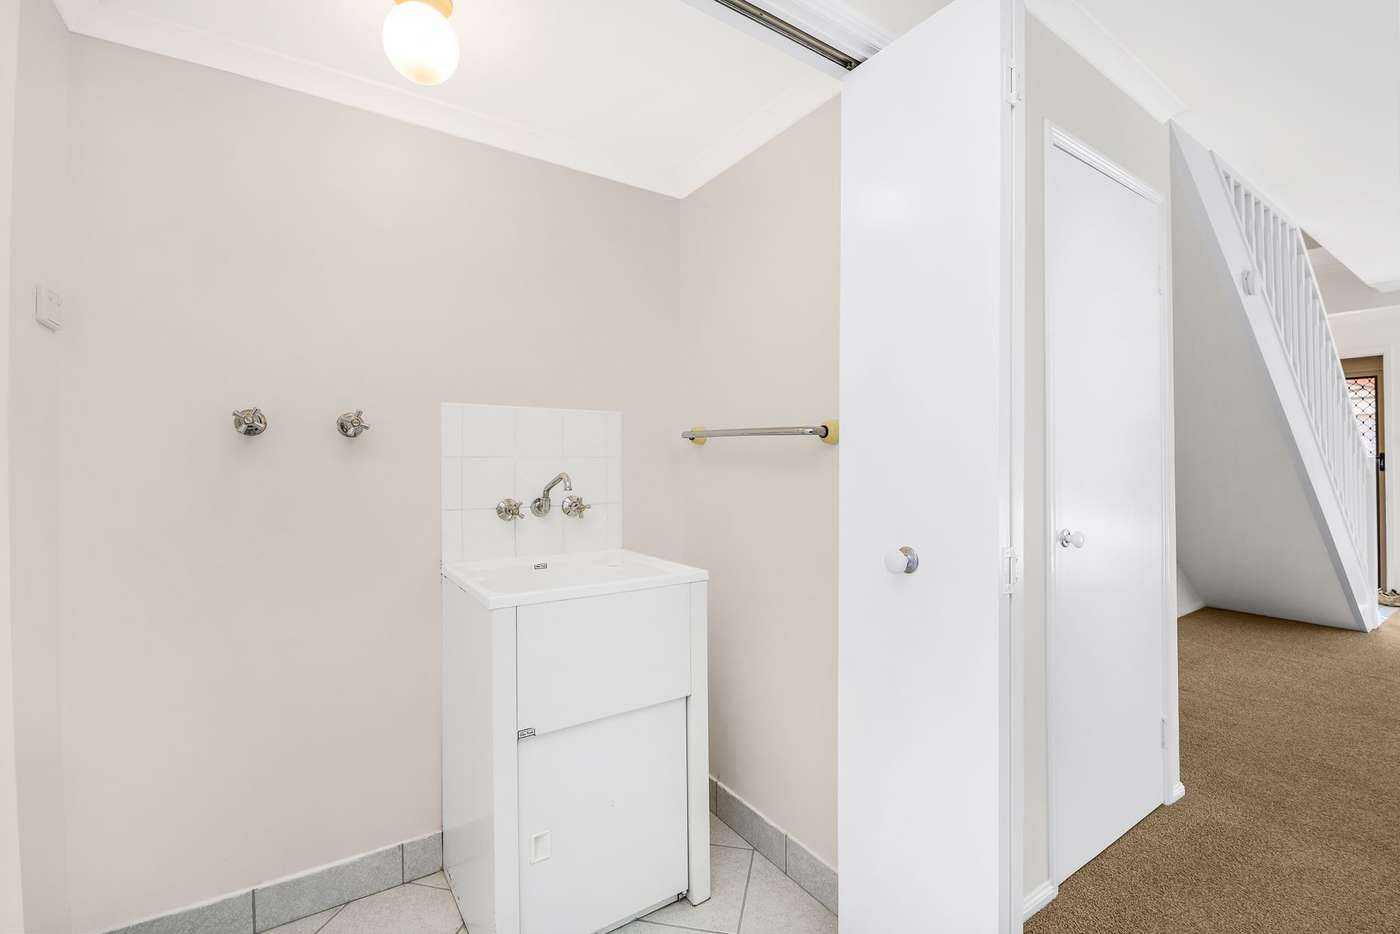 Fifth view of Homely townhouse listing, 15/49 Colac Street, Kedron QLD 4031